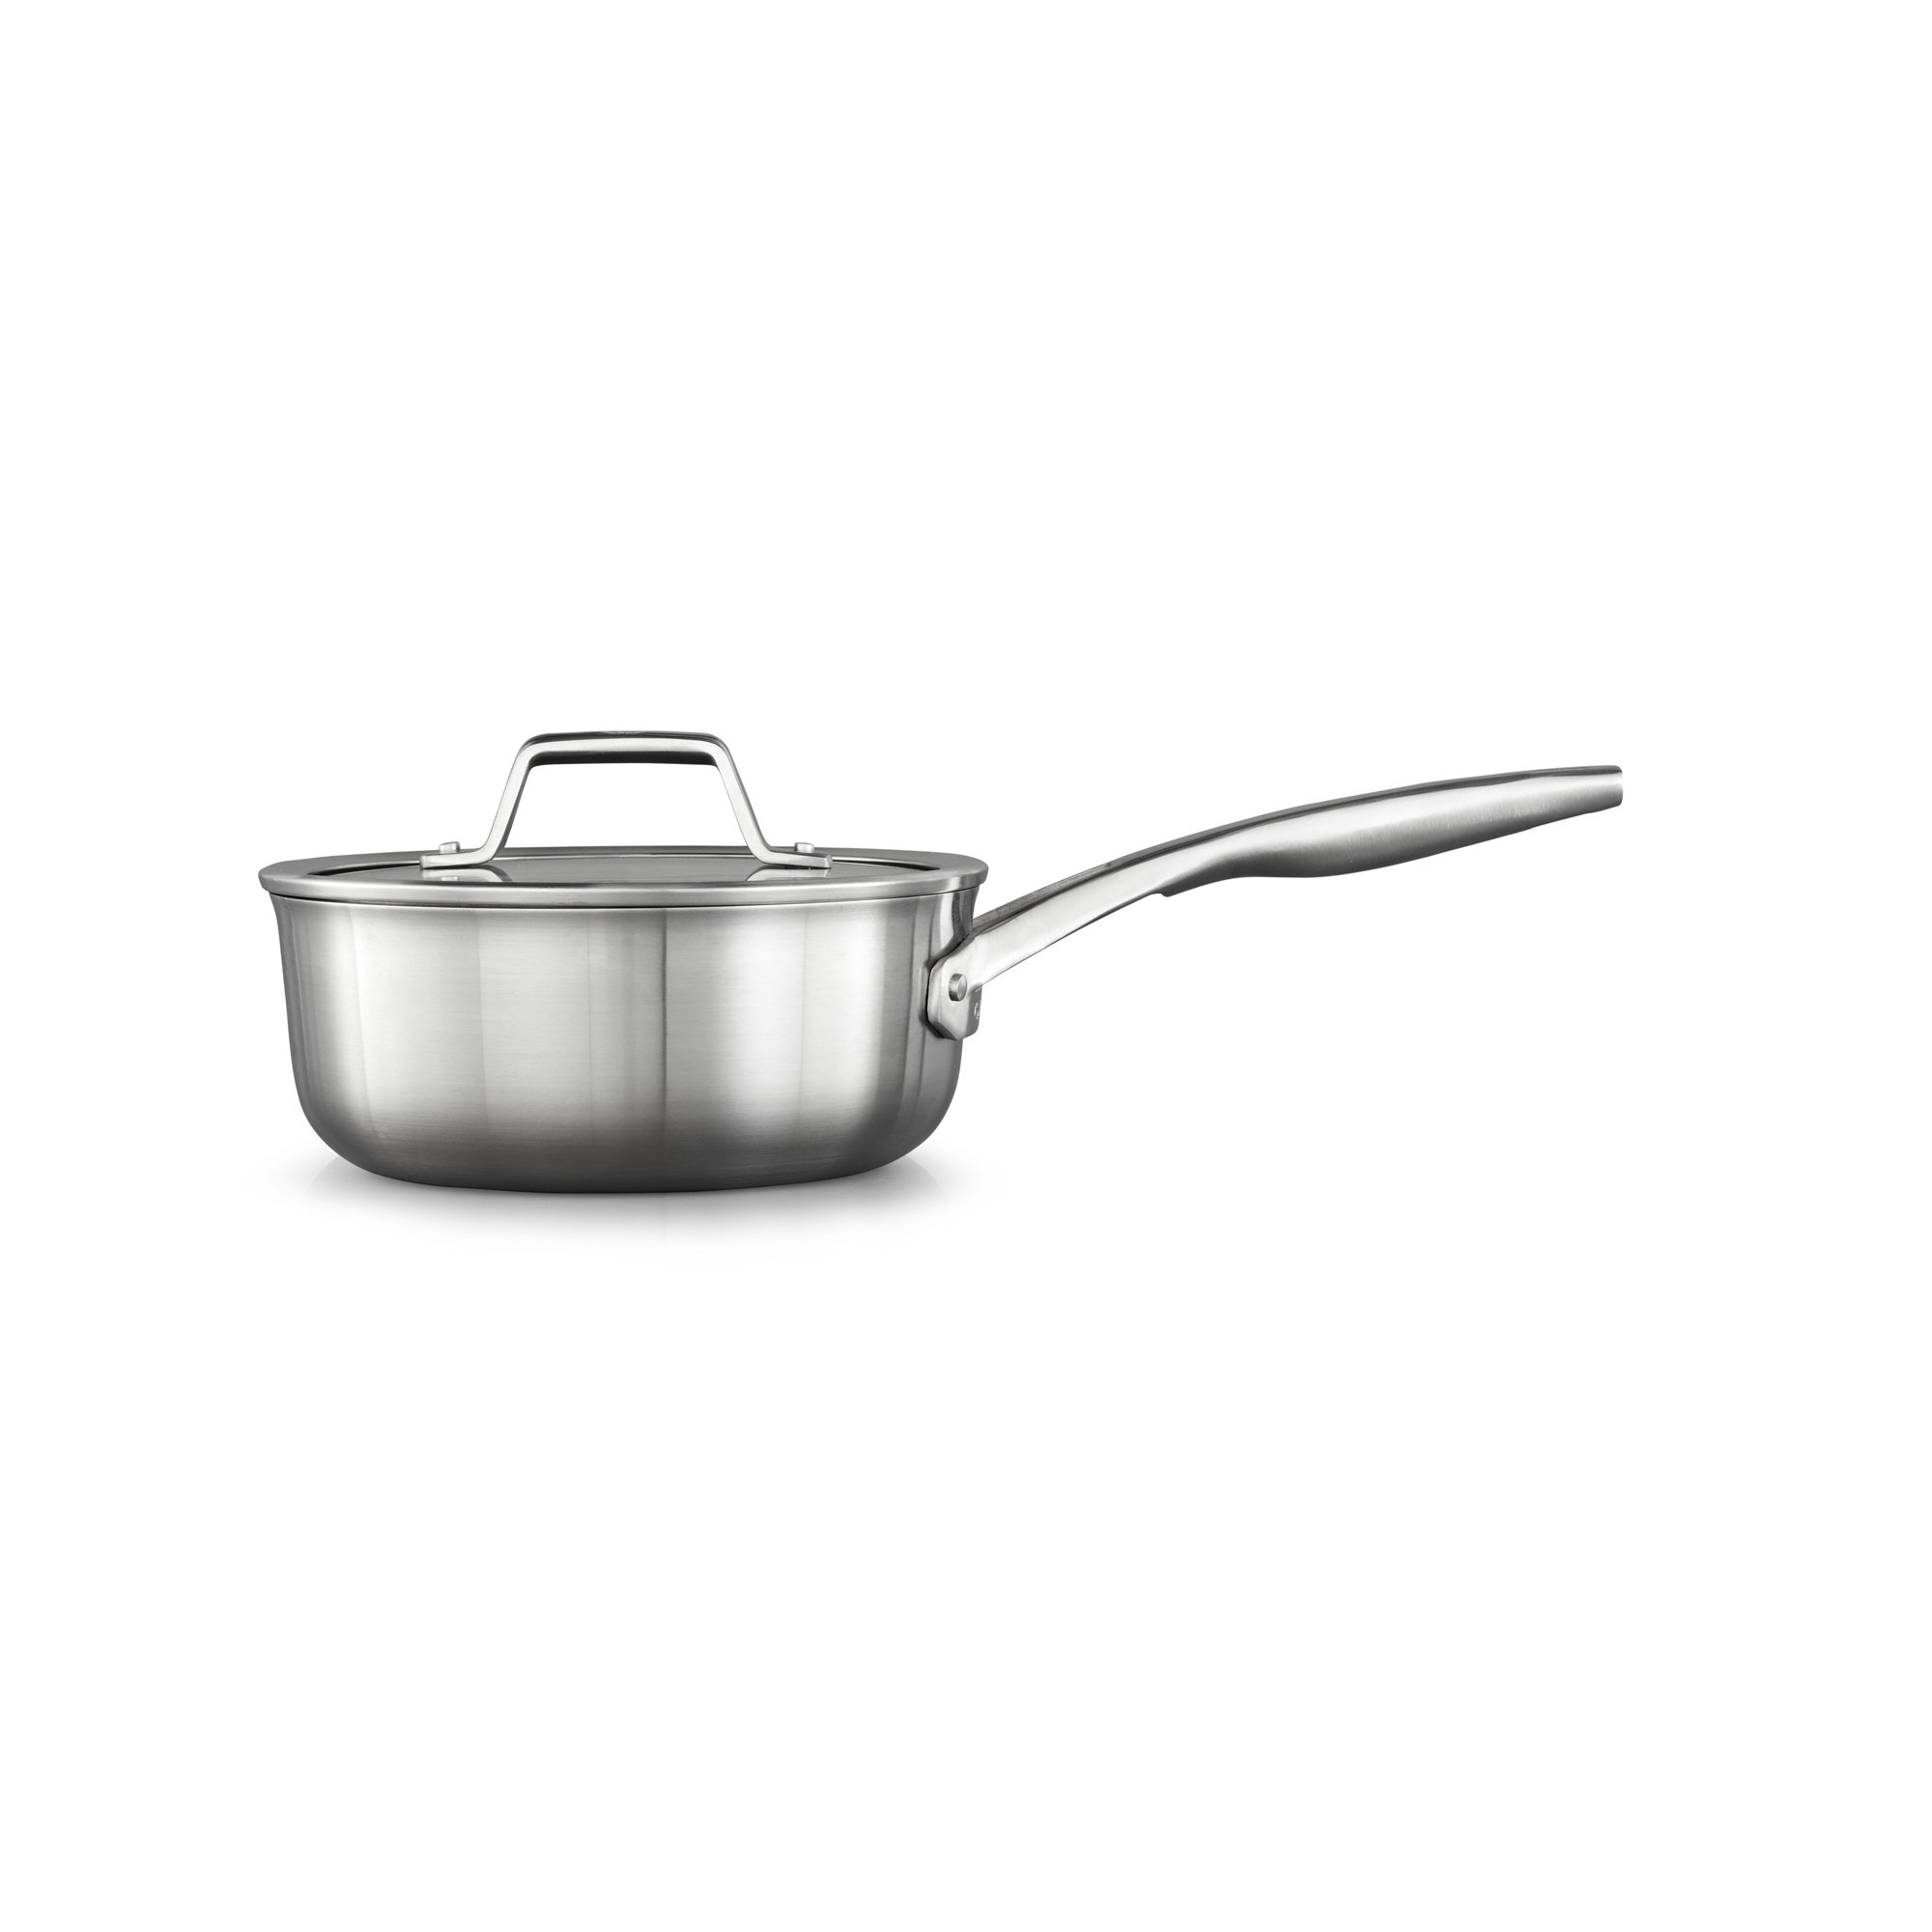 Calphalon Premier Stainless Steel 2.5-Quart Saucepan with Cover